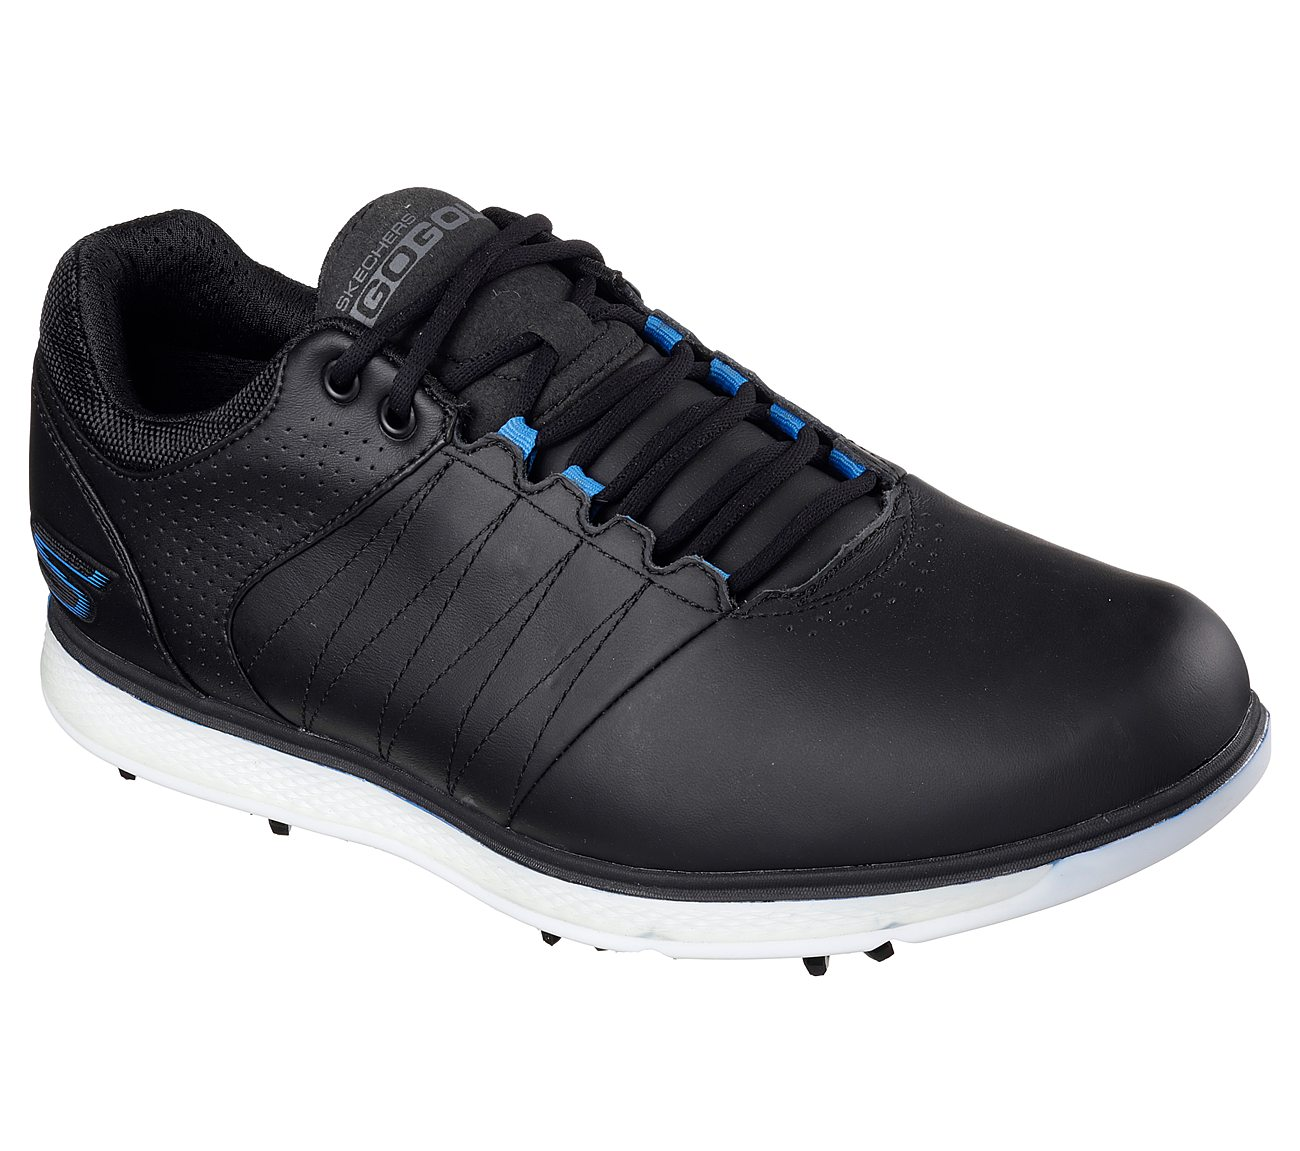 5a51d74cbaa3 Buy SKECHERS Skechers GO GOLF Pro 2 Skechers Performance Shoes only ...